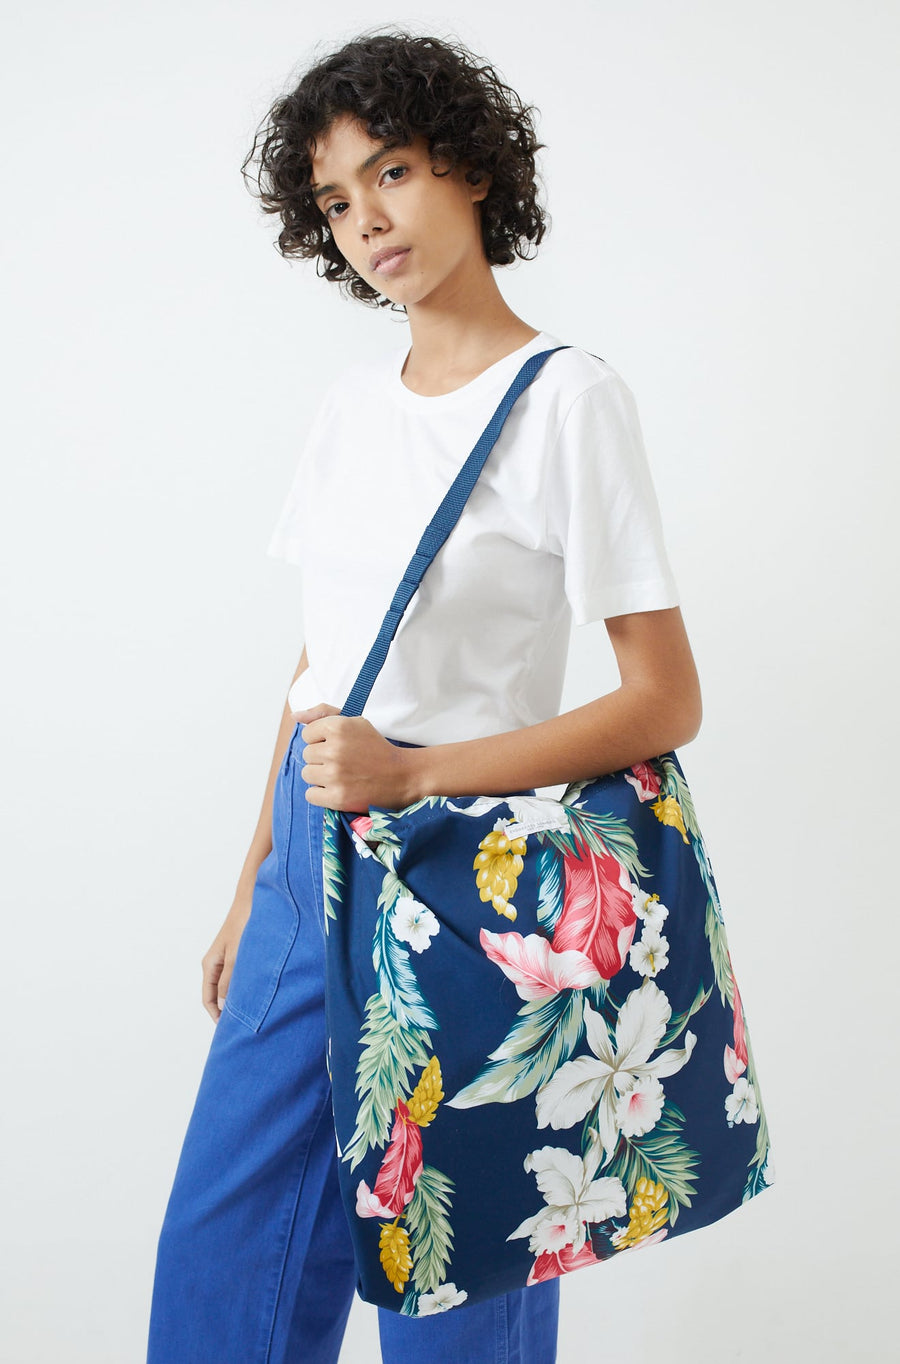 Floral Carry All Tote-navy hawaiian floral